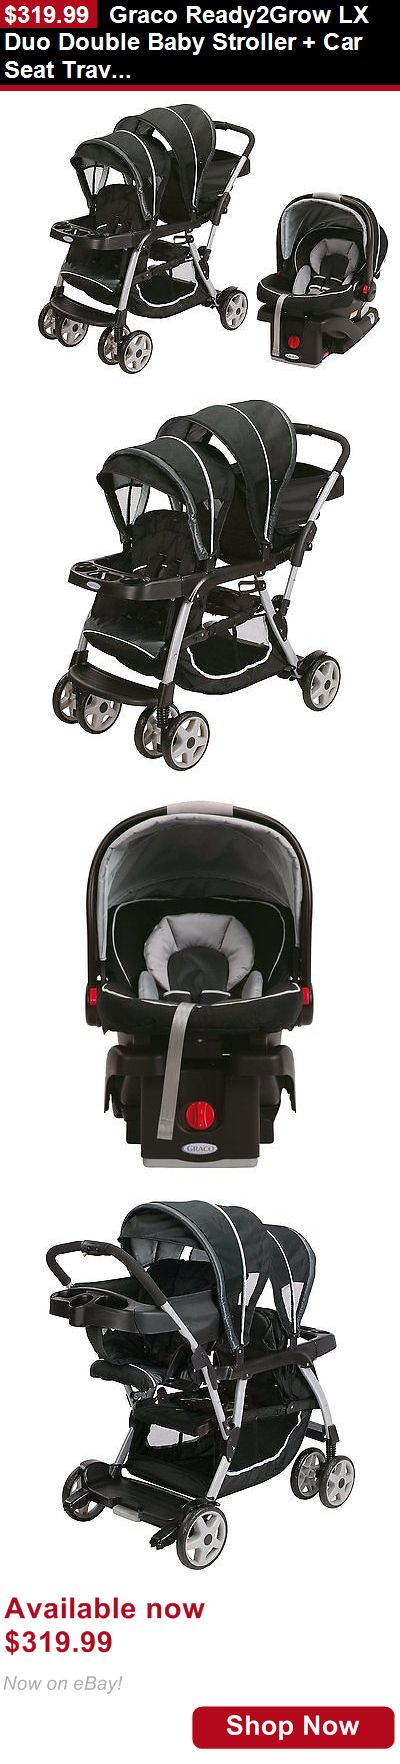 Strollers: Graco Ready2grow Lx Duo Double Baby Stroller + Car Seat Travel System, Gotham BUY IT NOW ONLY: $319.99